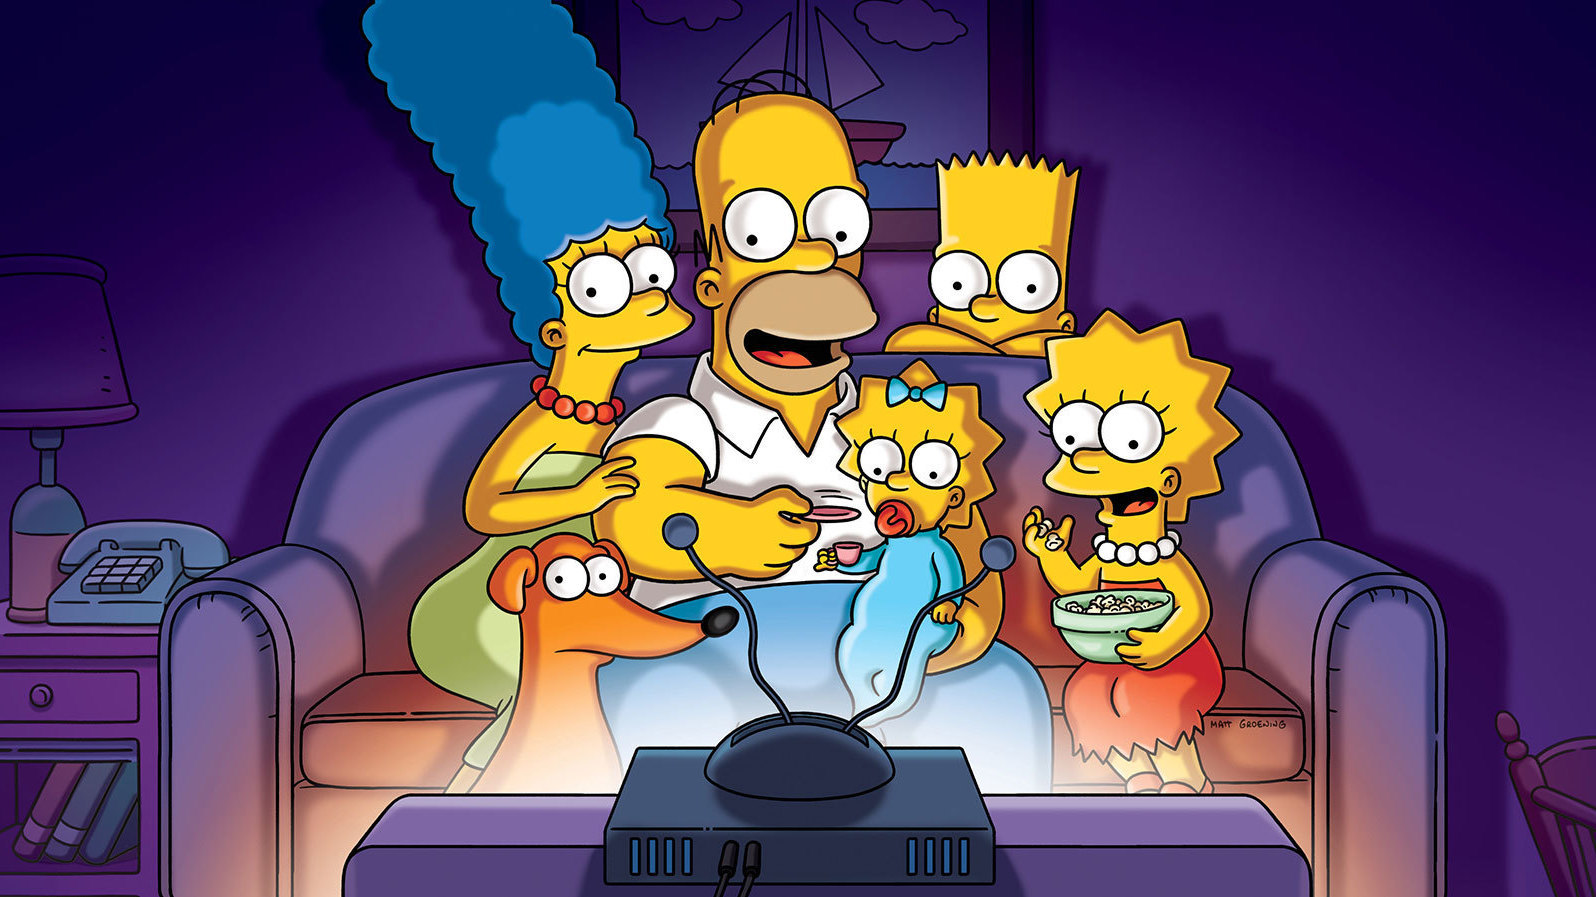 It's Official: The Simpsons Are Coming to Disney+ on November 12